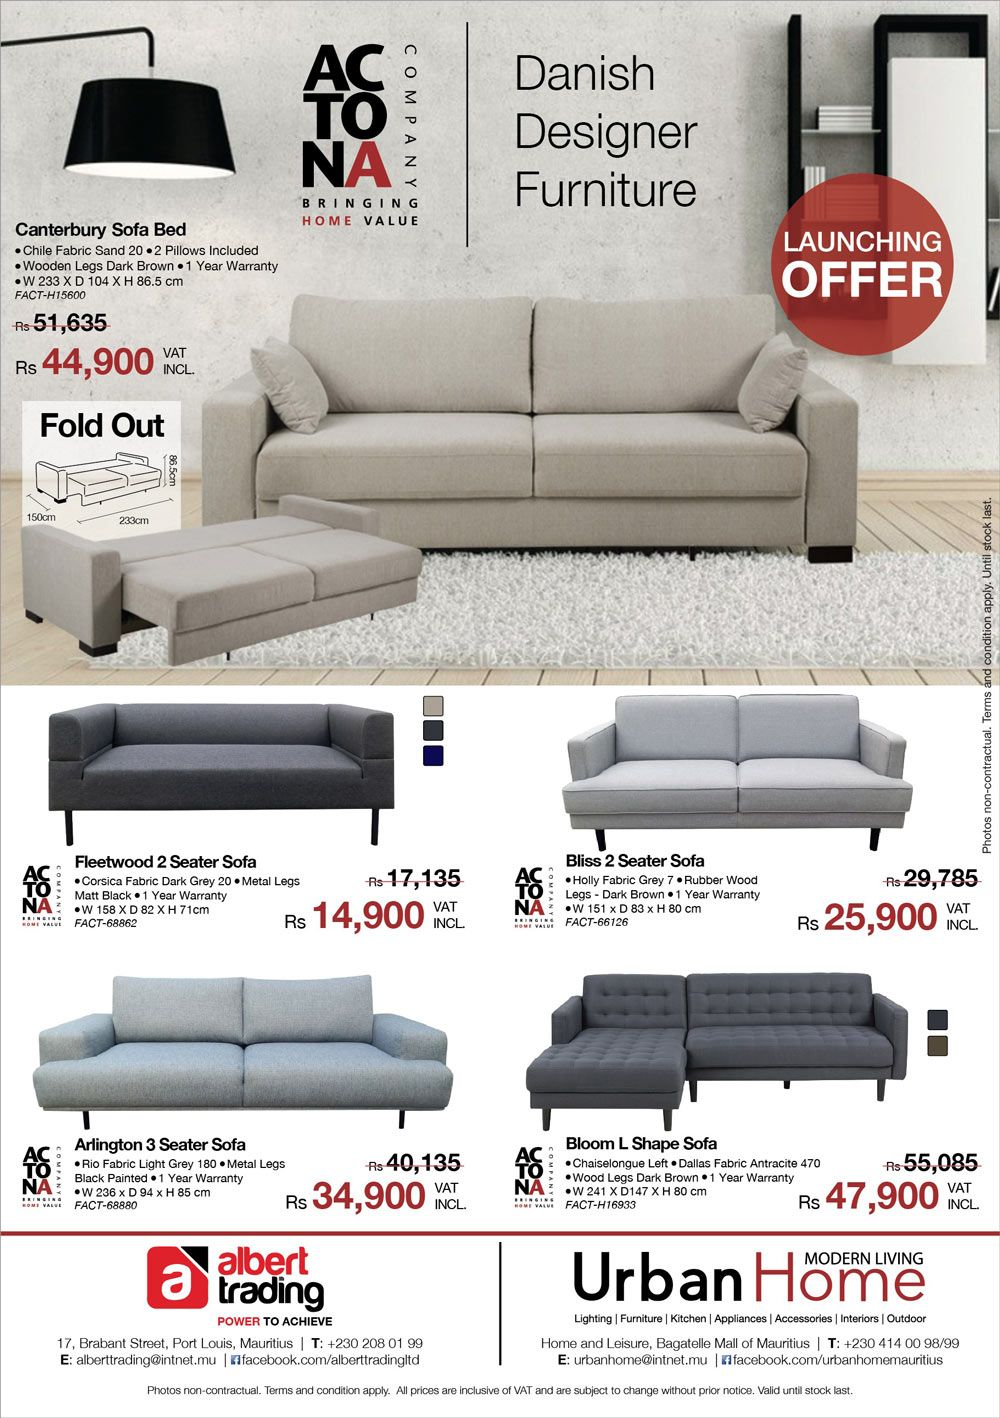 Albert Trading Urban Home New Arrival Actona Sofa Tel 208 0199